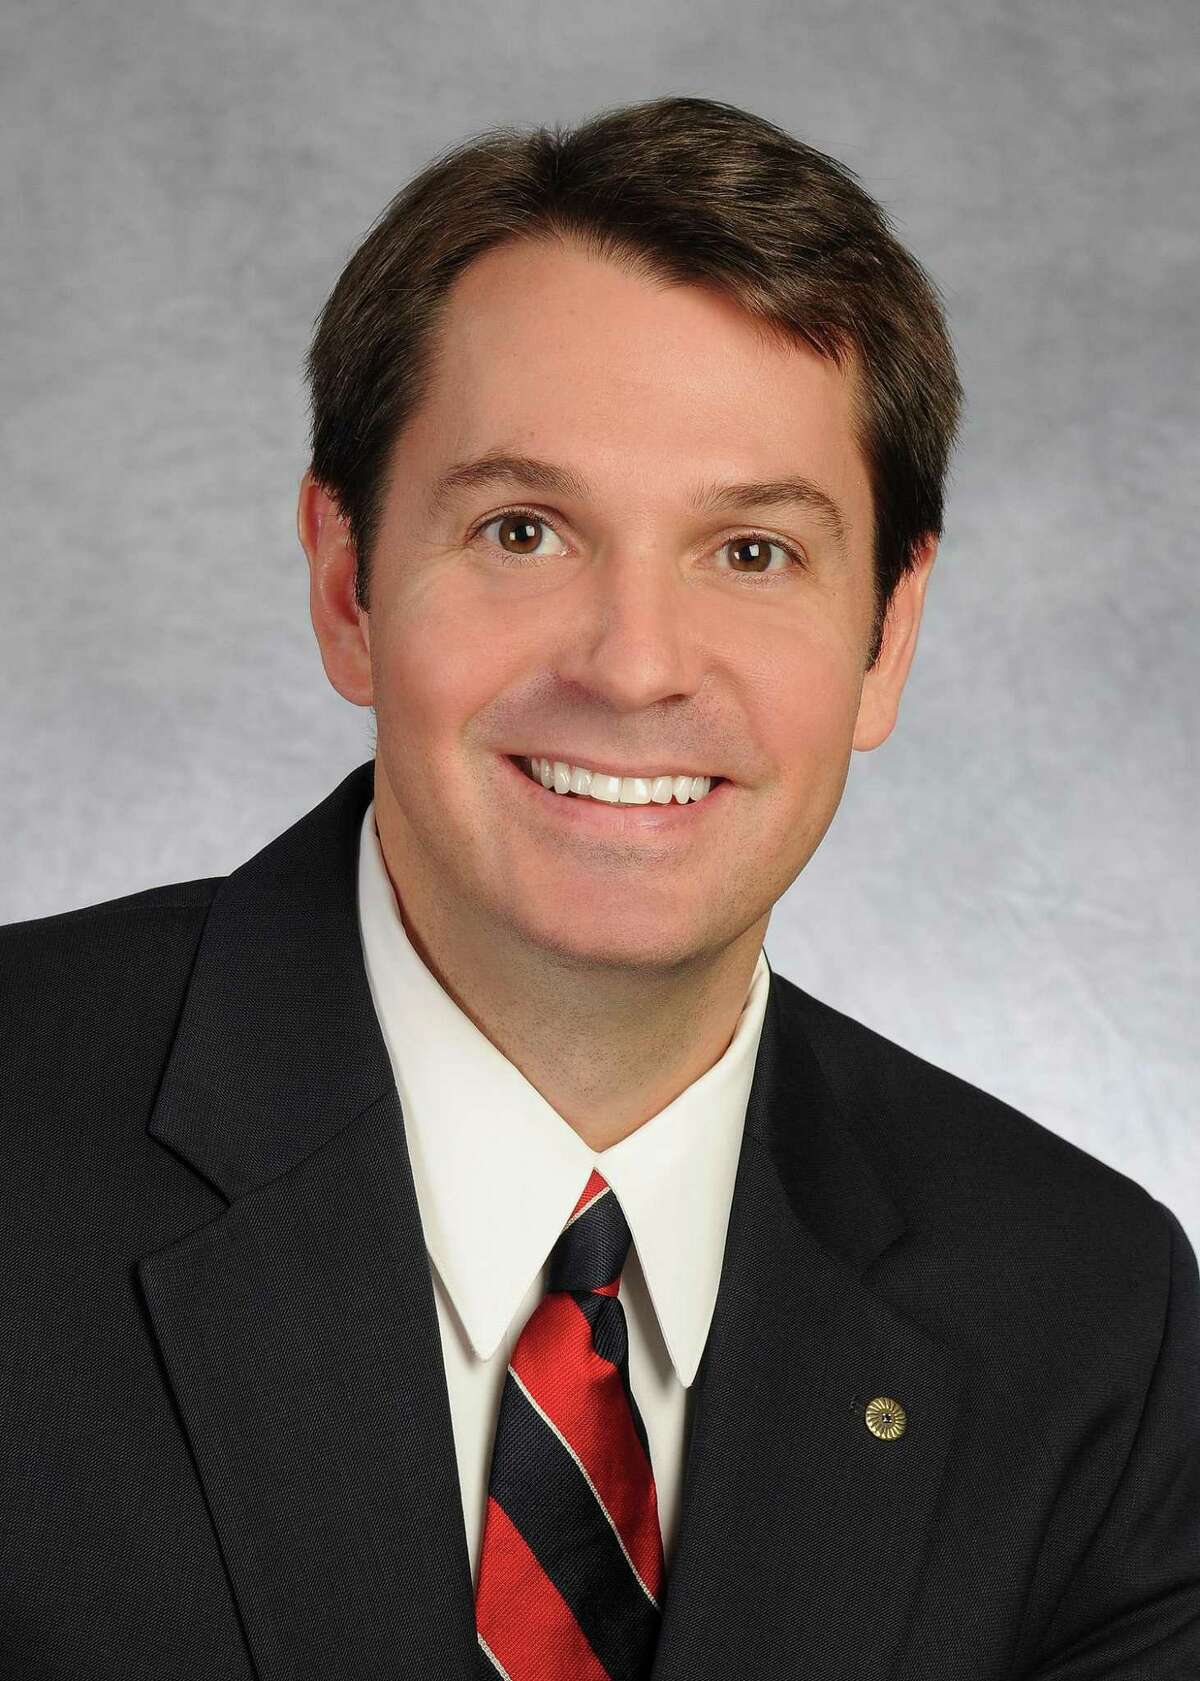 Frost Bank has named Dan Geddes president of its San Antonio region. He will succeed Marvin Rickabaugh, who is retiring at the end of the year.